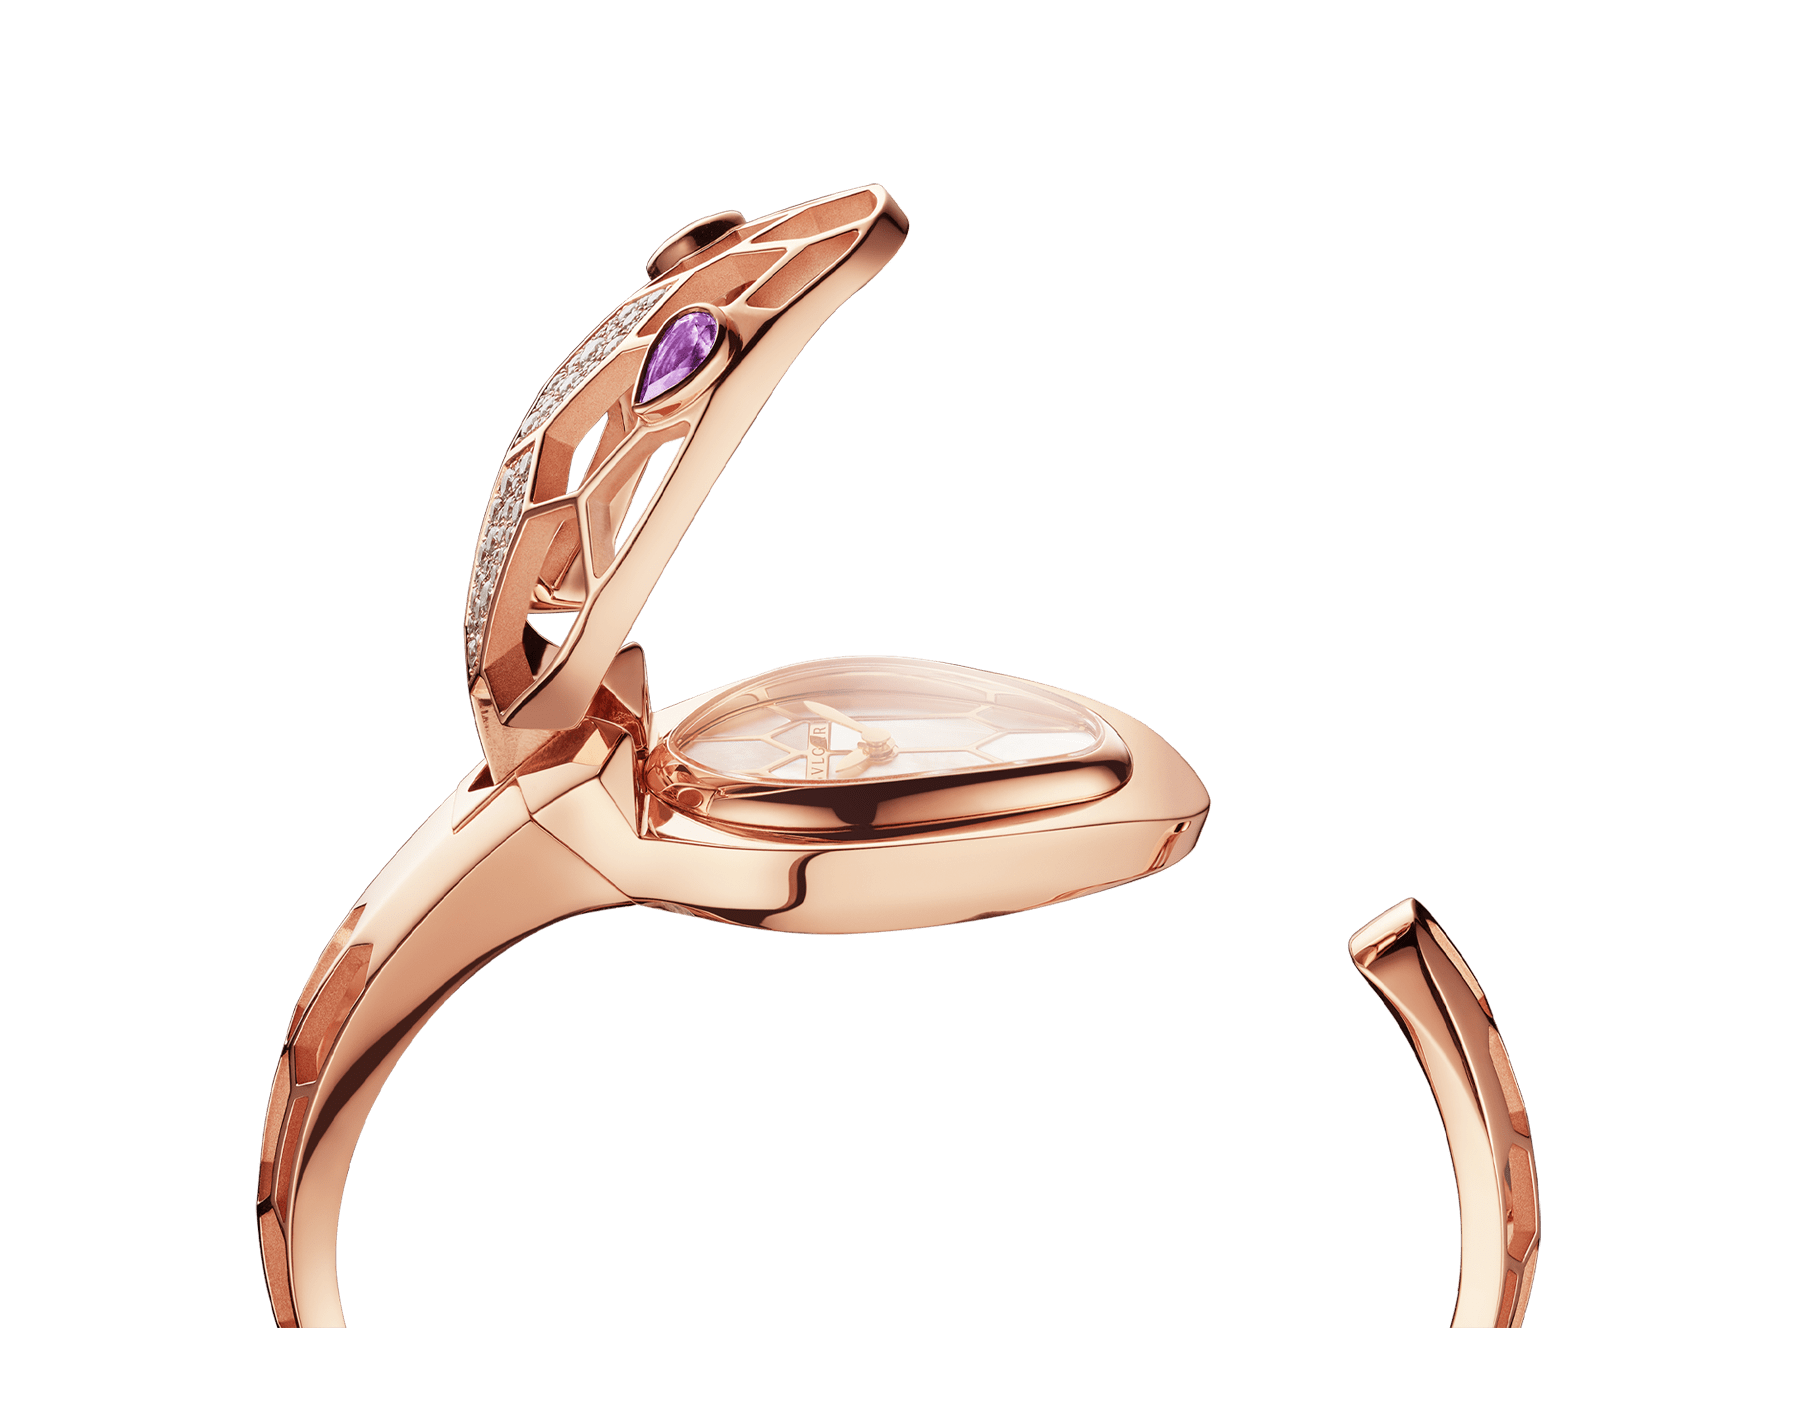 Serpenti Misteriosi Secret Watch with 18 kt rose gold skeletonized case set with round brilliant-cut diamonds, white mother-of-pearl dial, 18 kt rose gold skeletonized bangle bracelet and pear-shaped amethyst eyes. SrpntMister-SecretWtc-rose-gold image 9